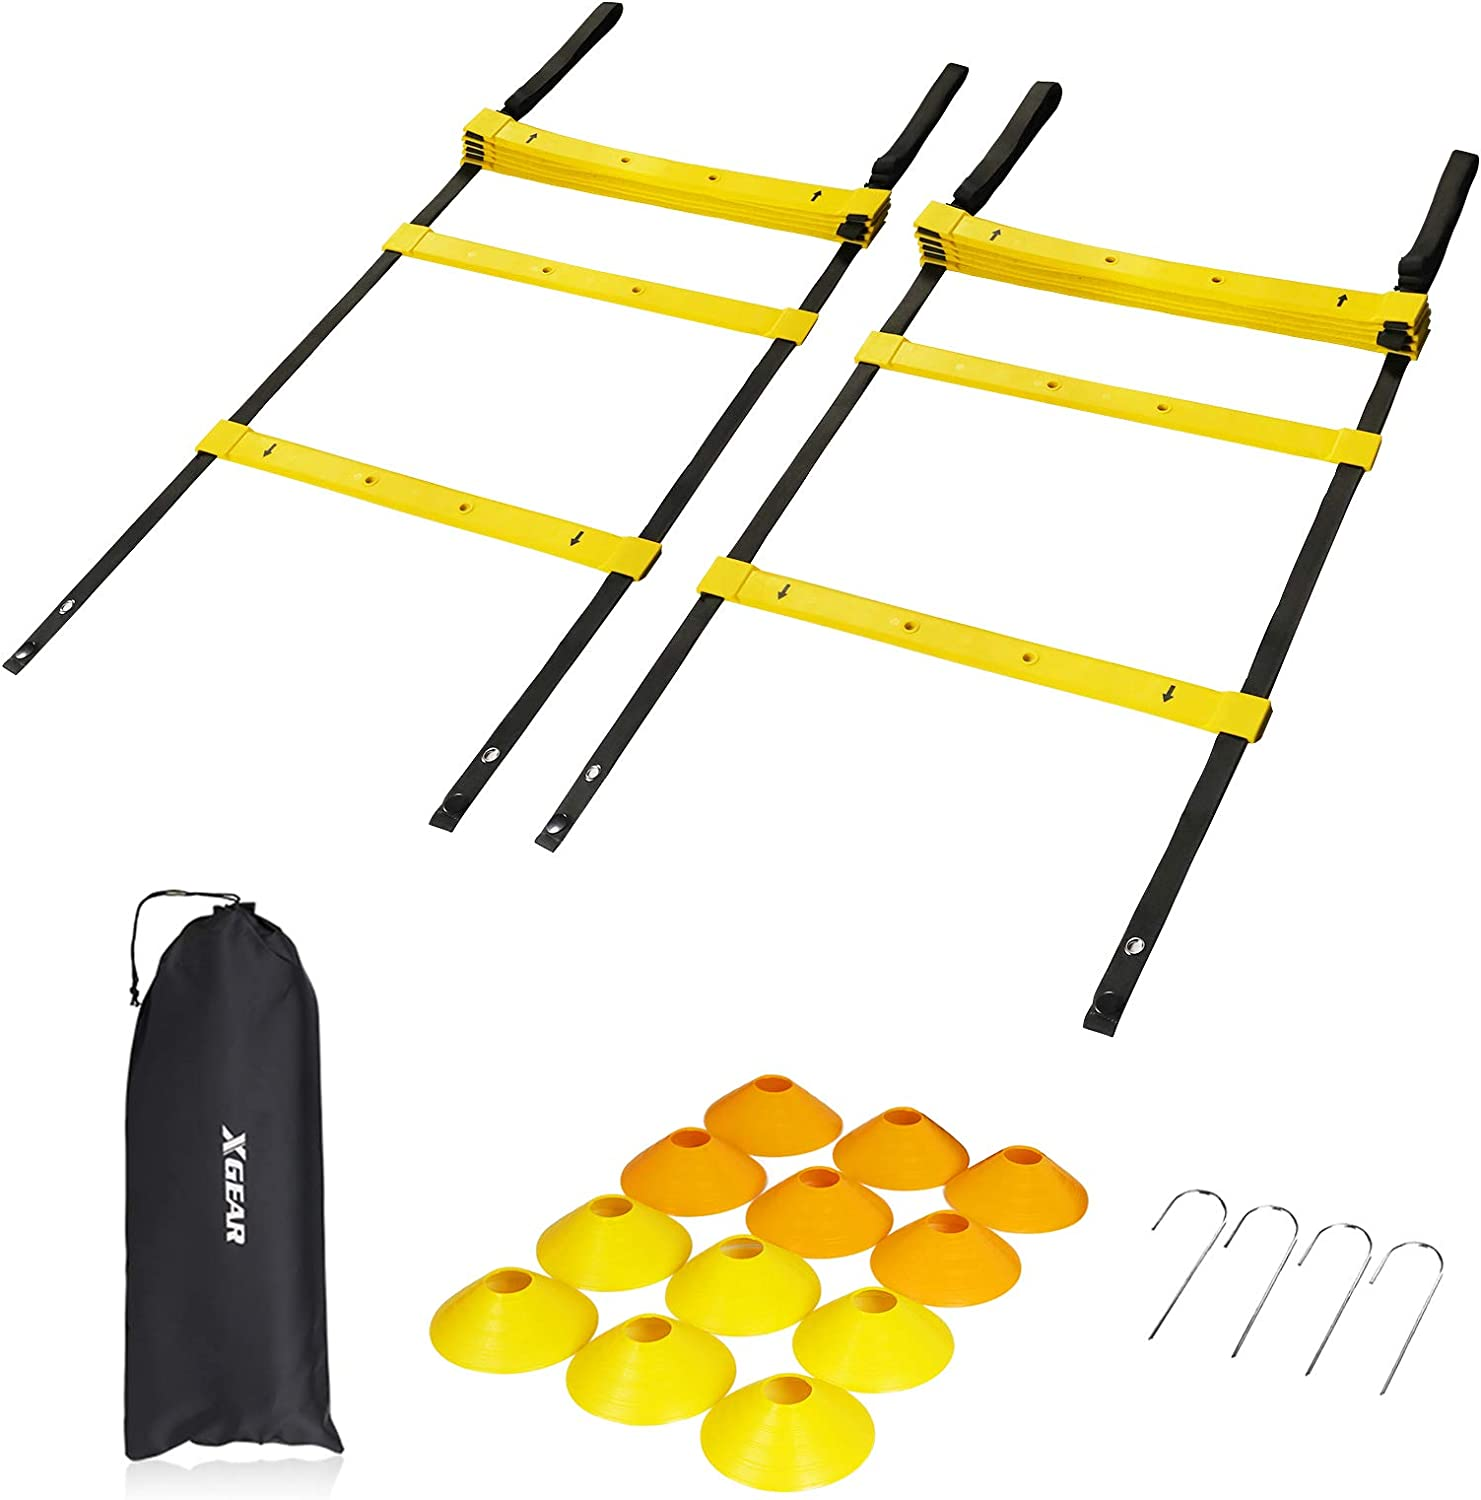 XGEAR Speed Agility Training Set Easy-to-use favorite TPE P with Resistance Ladder